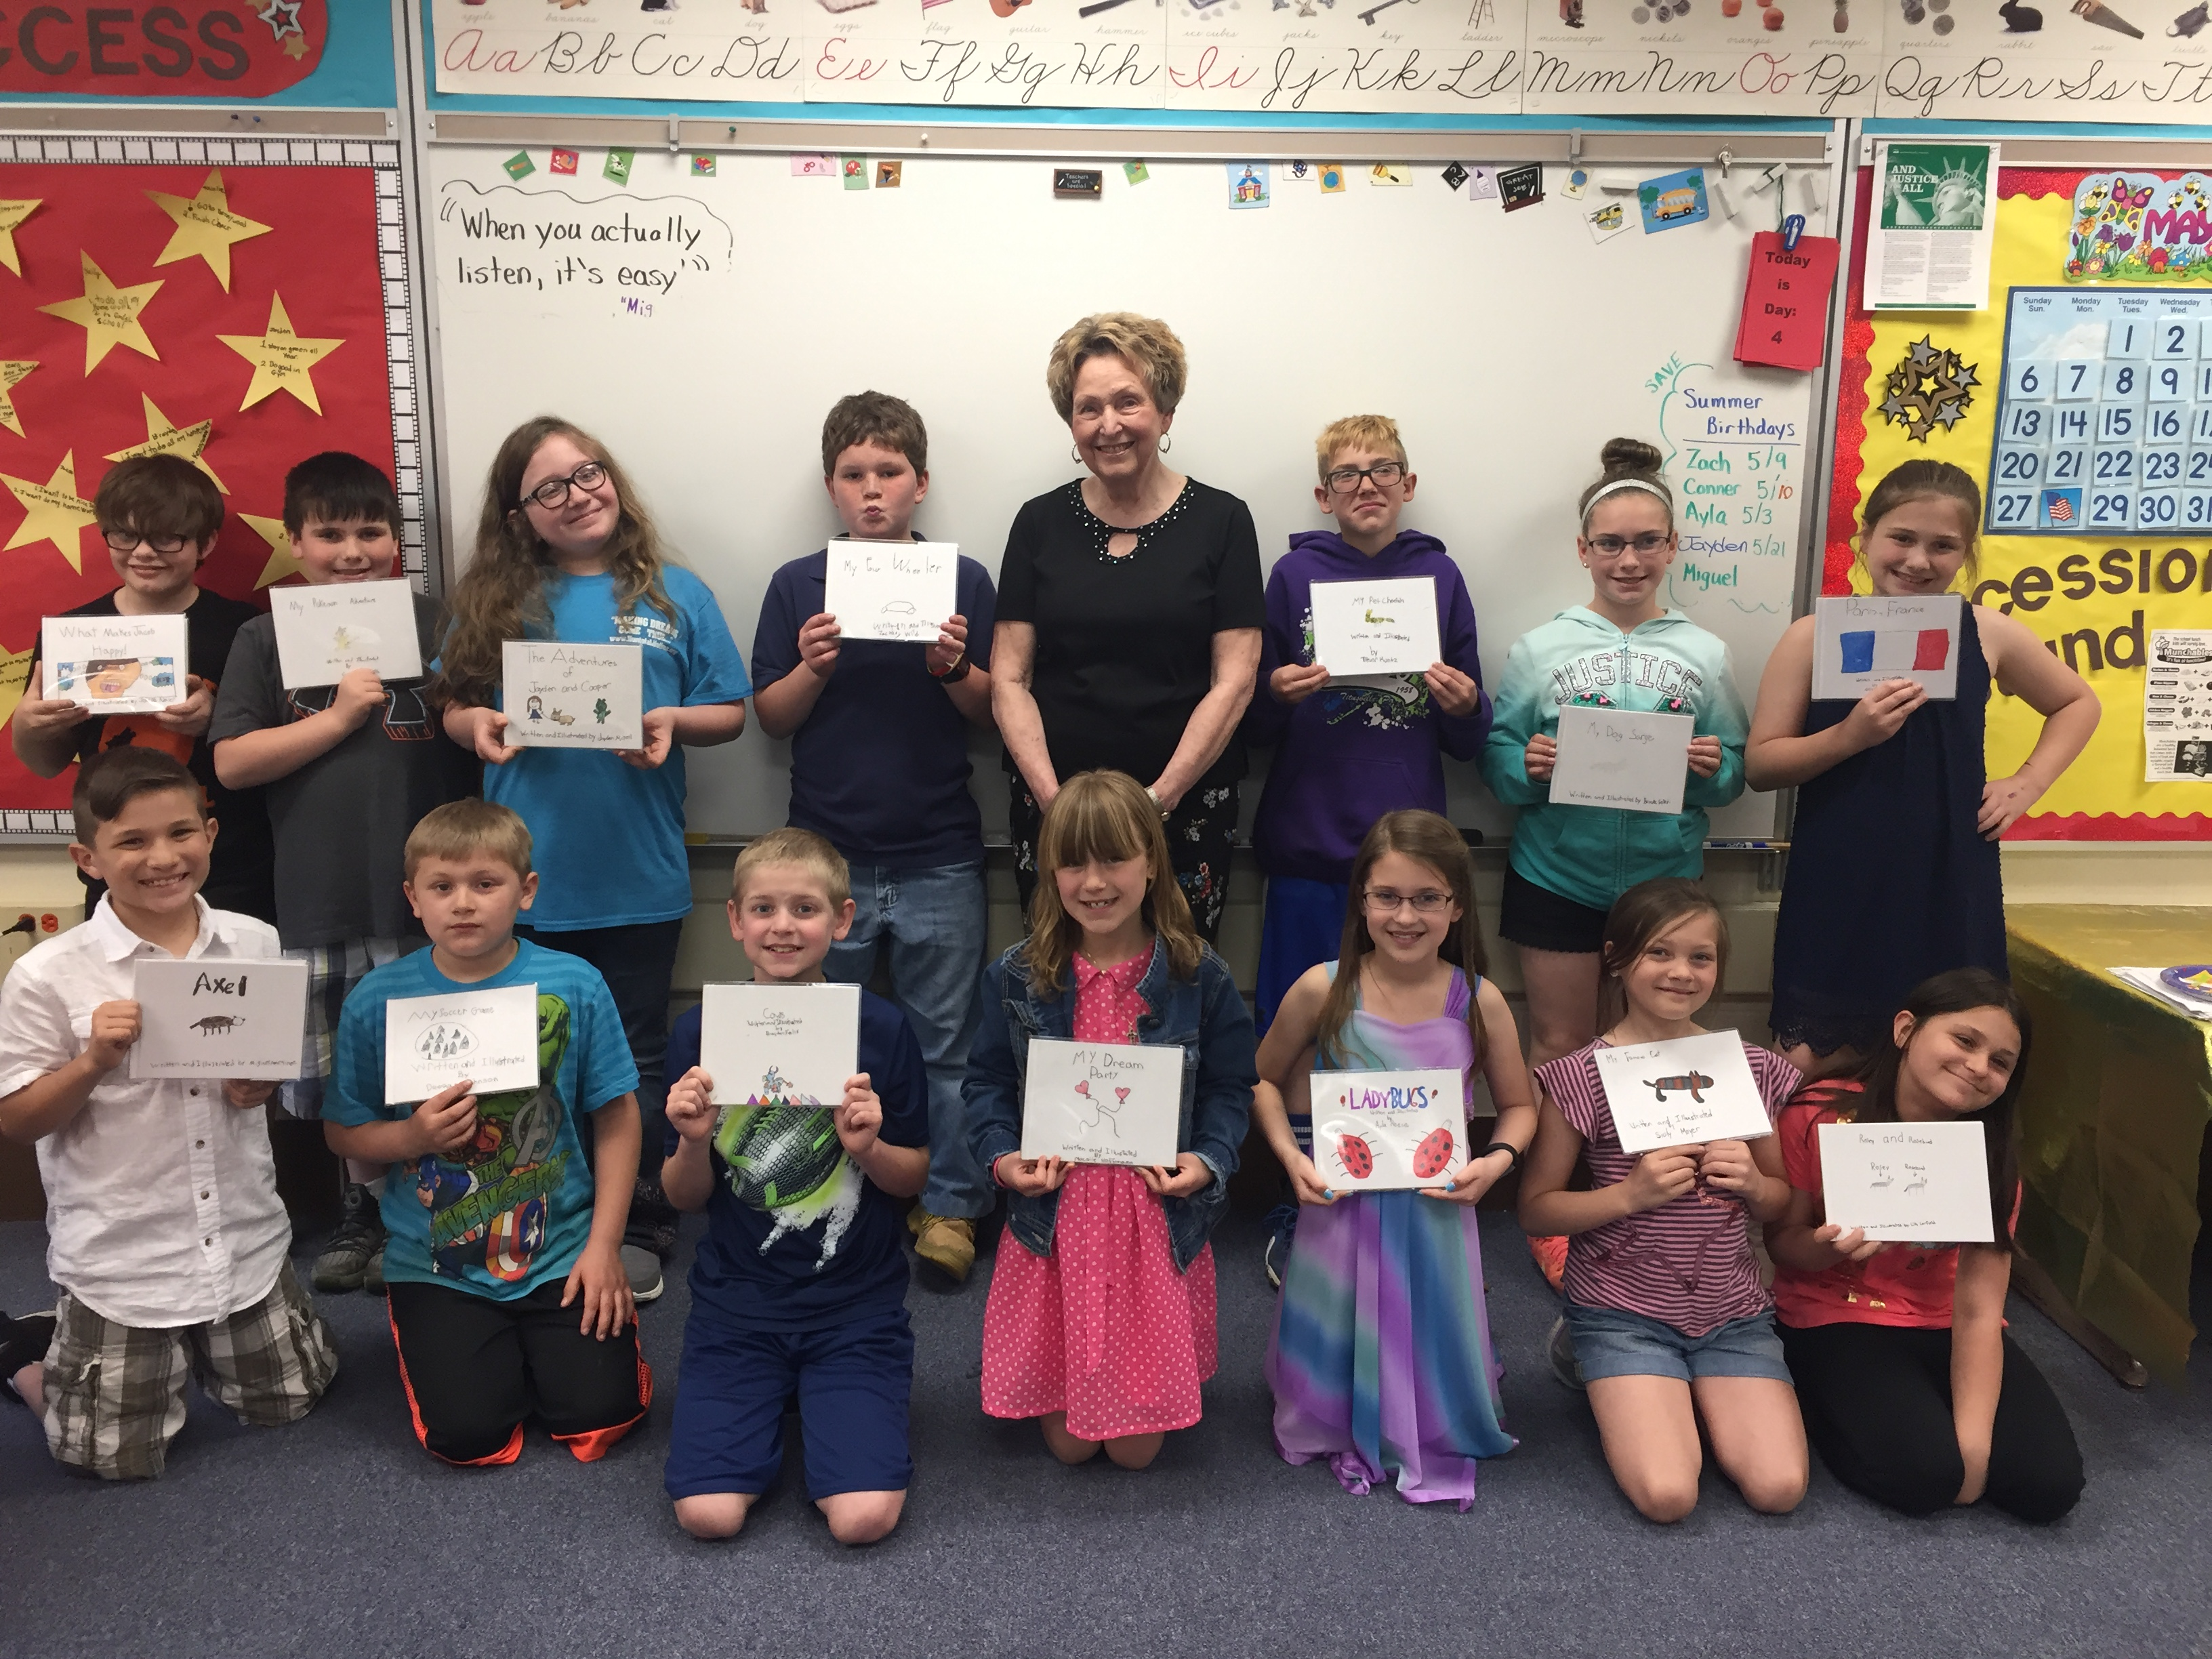 Mrs. D's class with Mrs. Hall